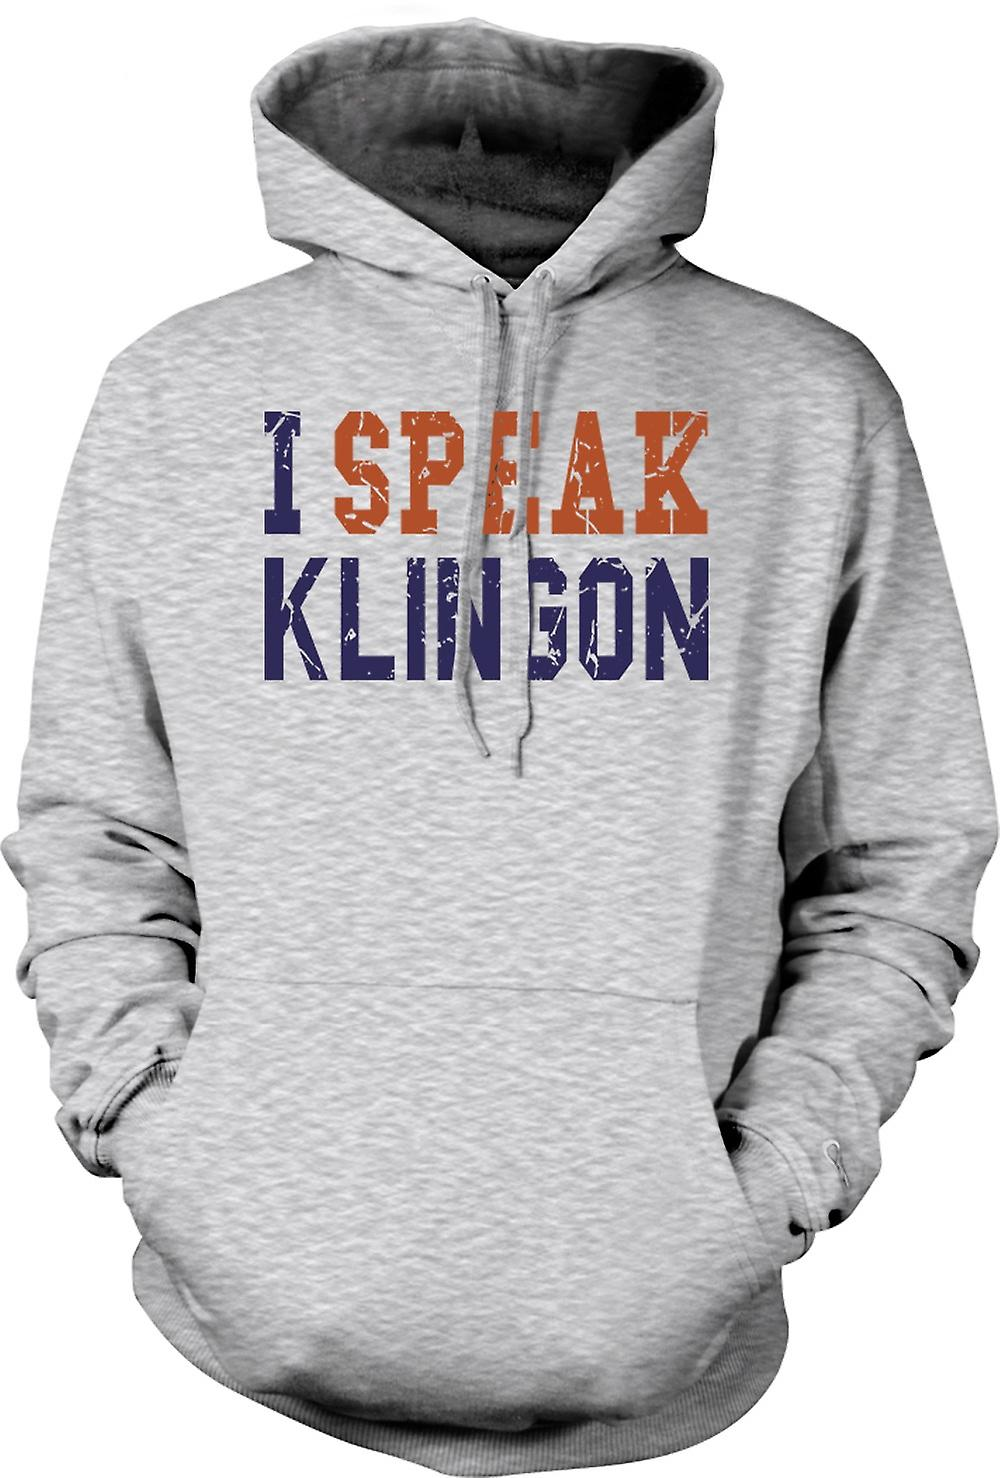 Mens Hoodie - I Speak Klingon - Funny